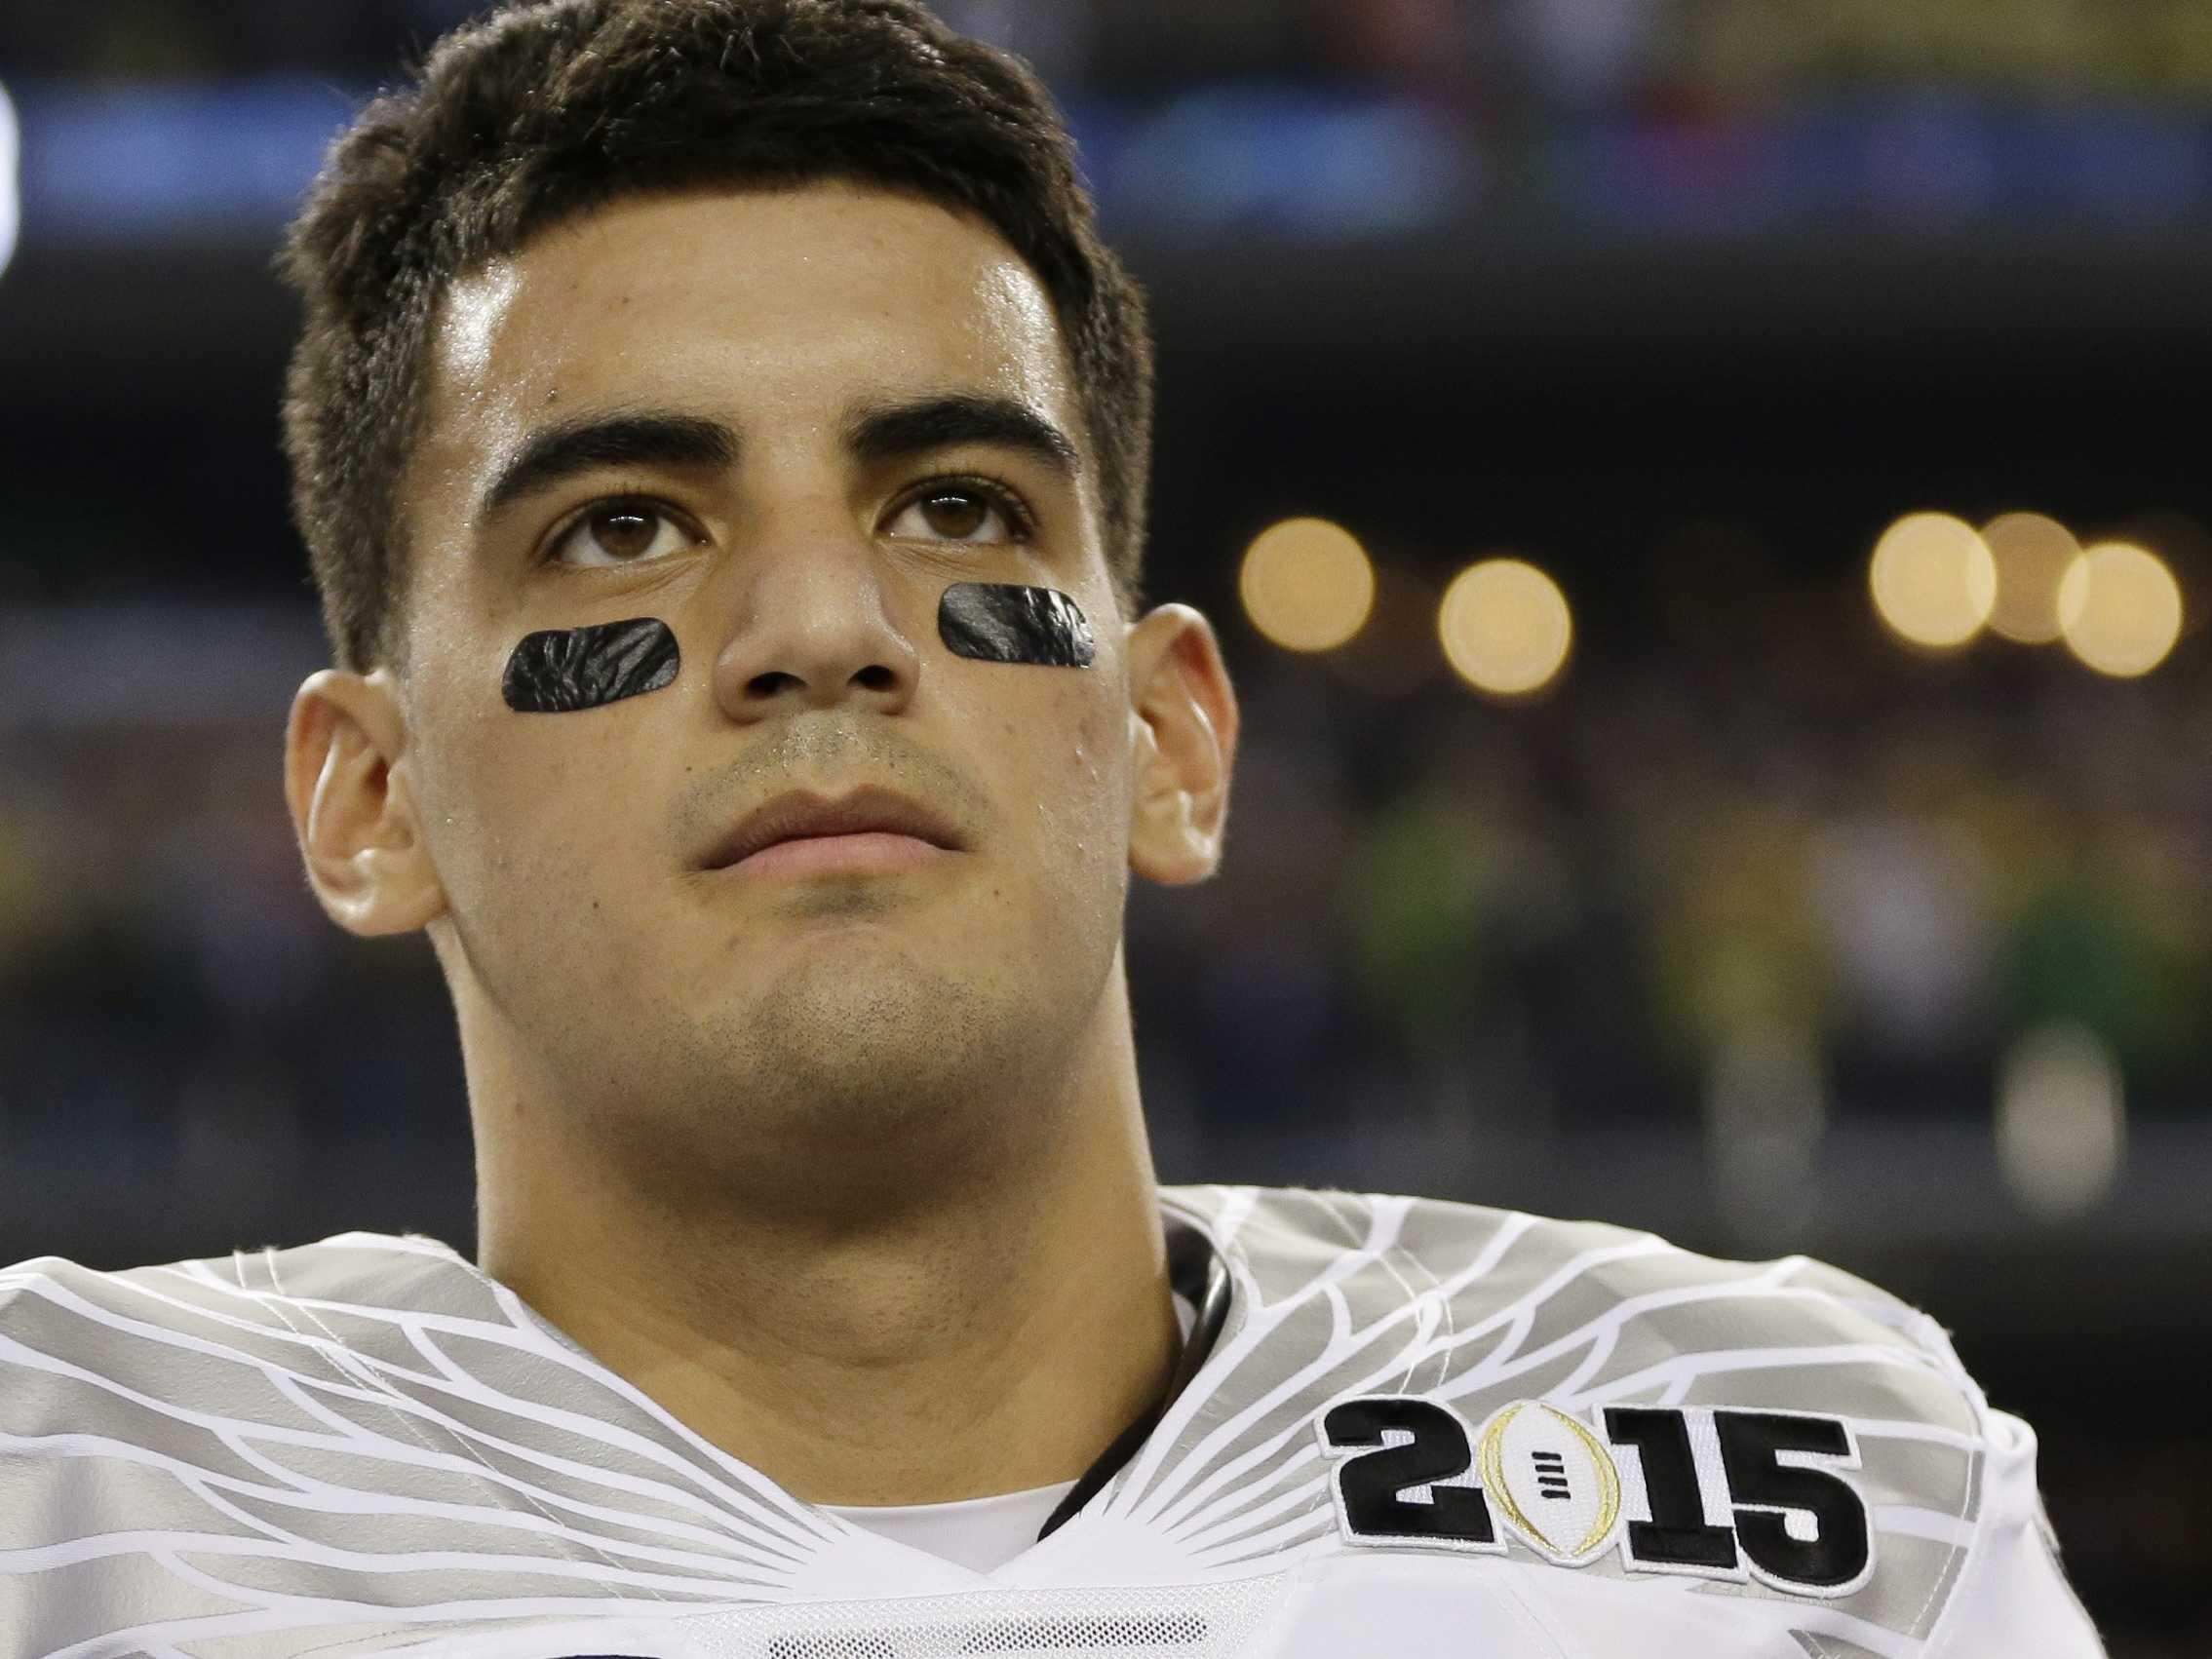 The Philadelphia Eagles should do whatever it takes to get Marcus Mariota